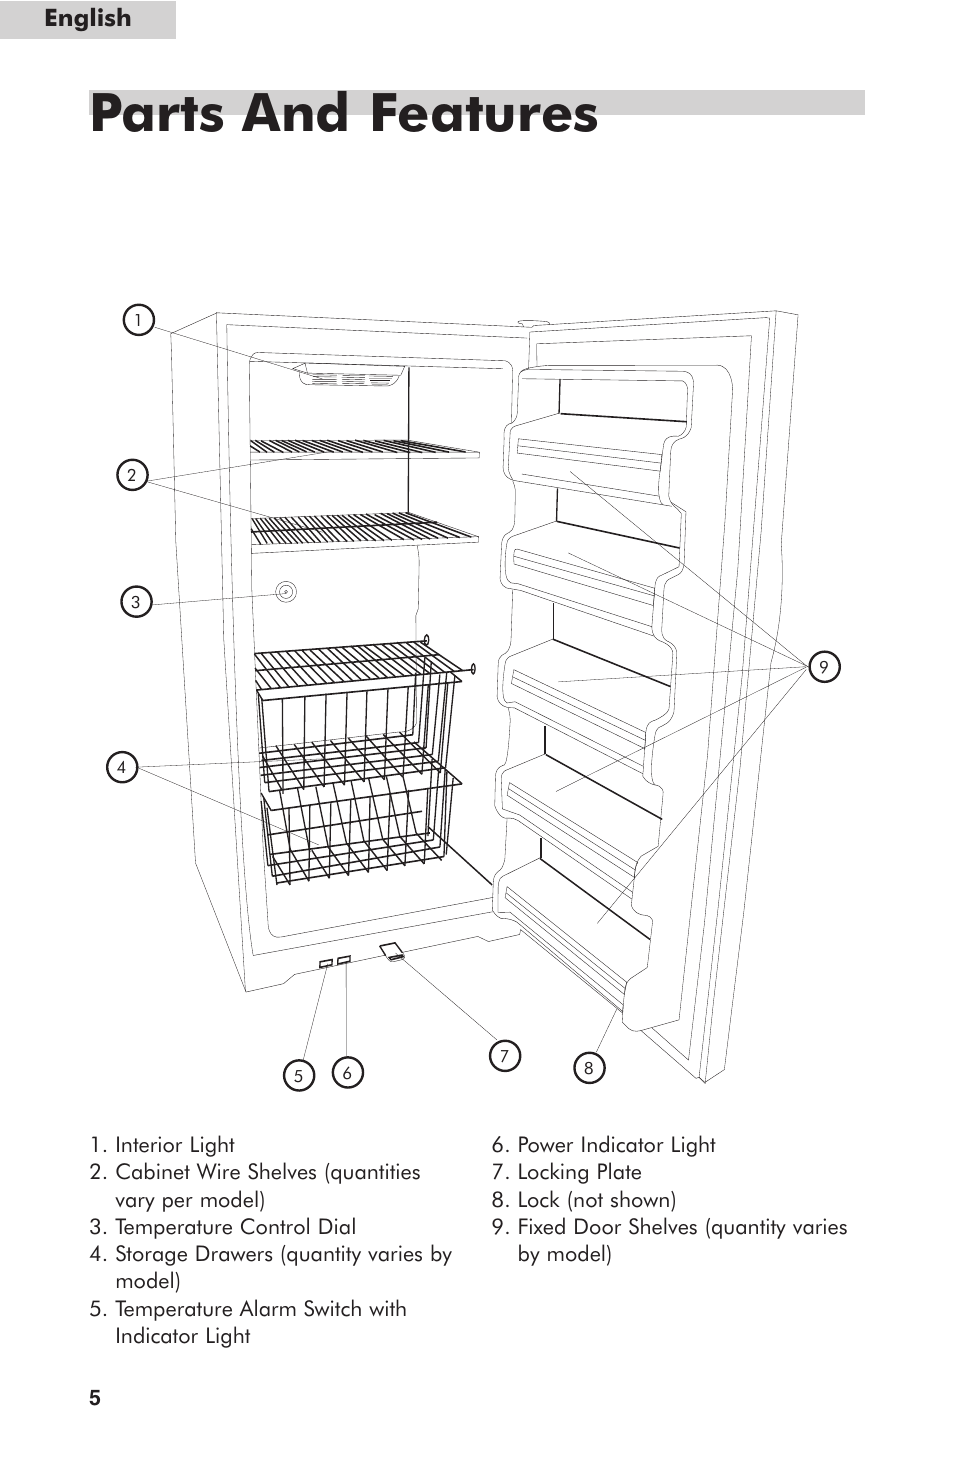 freezer haier huf168pb wiring diagram trusted wiring diagram rh dafpods co Haier Refrigerator Replacement Door Parts Cassette GE Refrigerator Ice Maker Wiring-Diagram